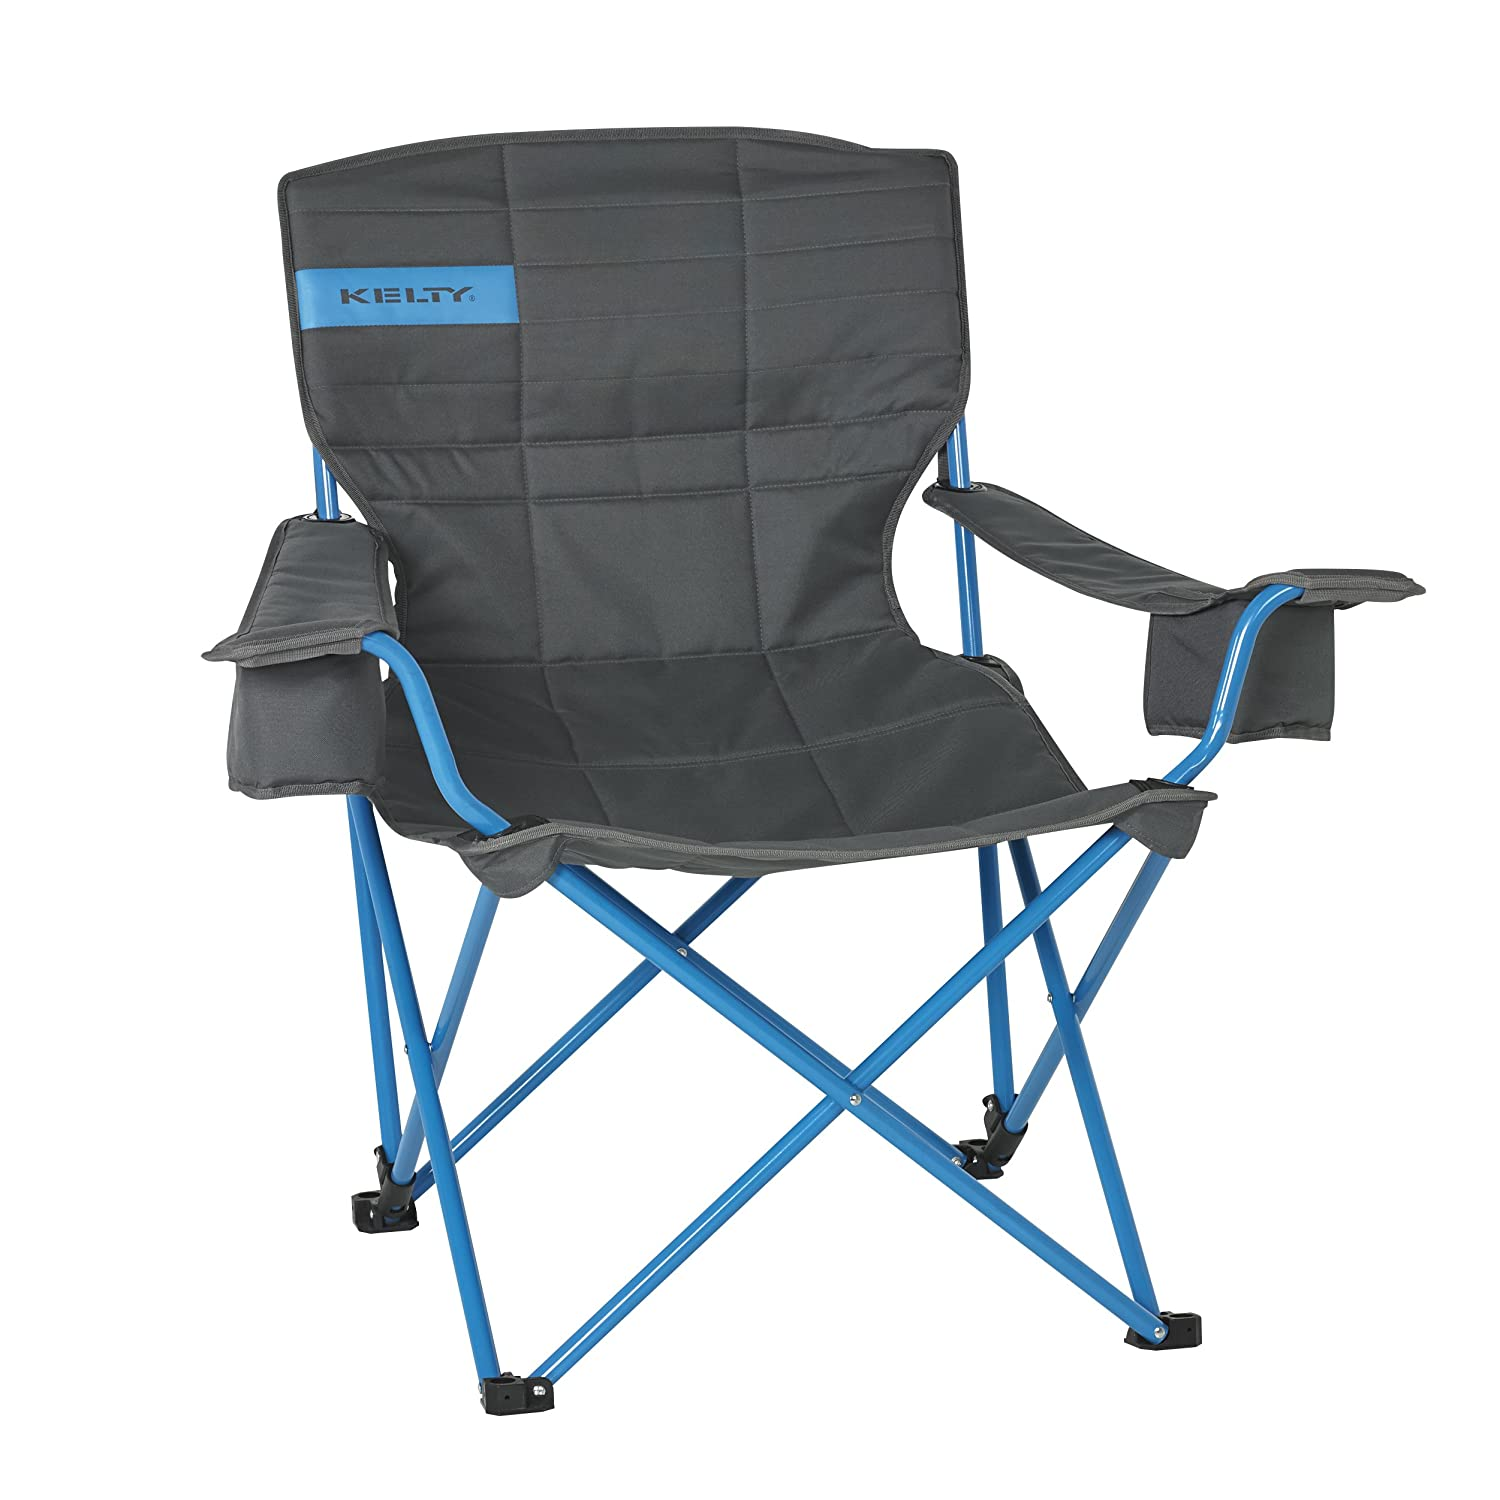 amazon com kelty low loveseat camp chair smoke paradise blue